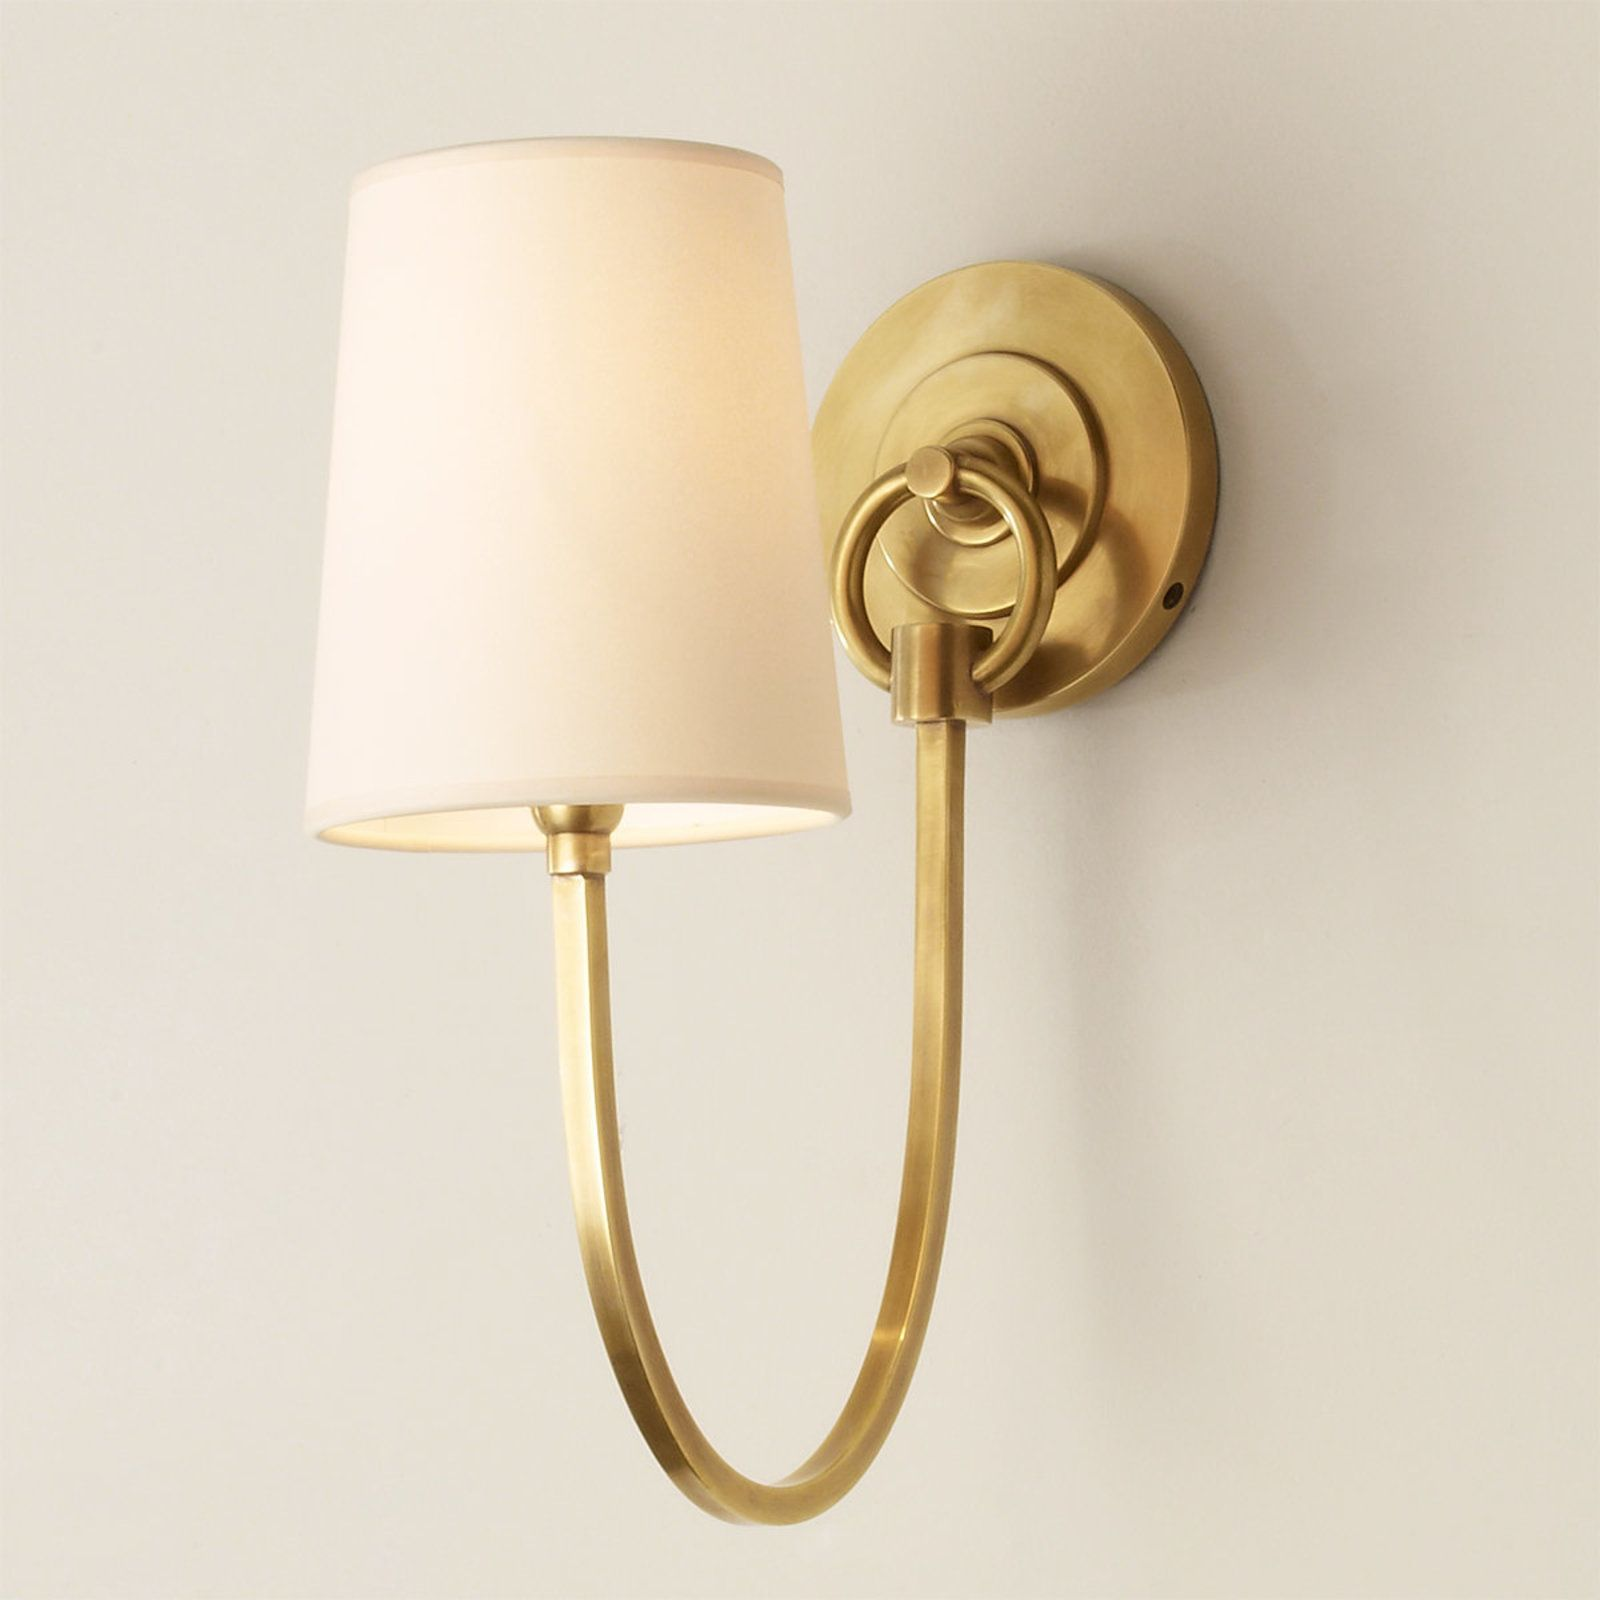 Swag Sconce 1 Light Contemporary Wall Sconces Wall Sconces Wall Sconce Shade